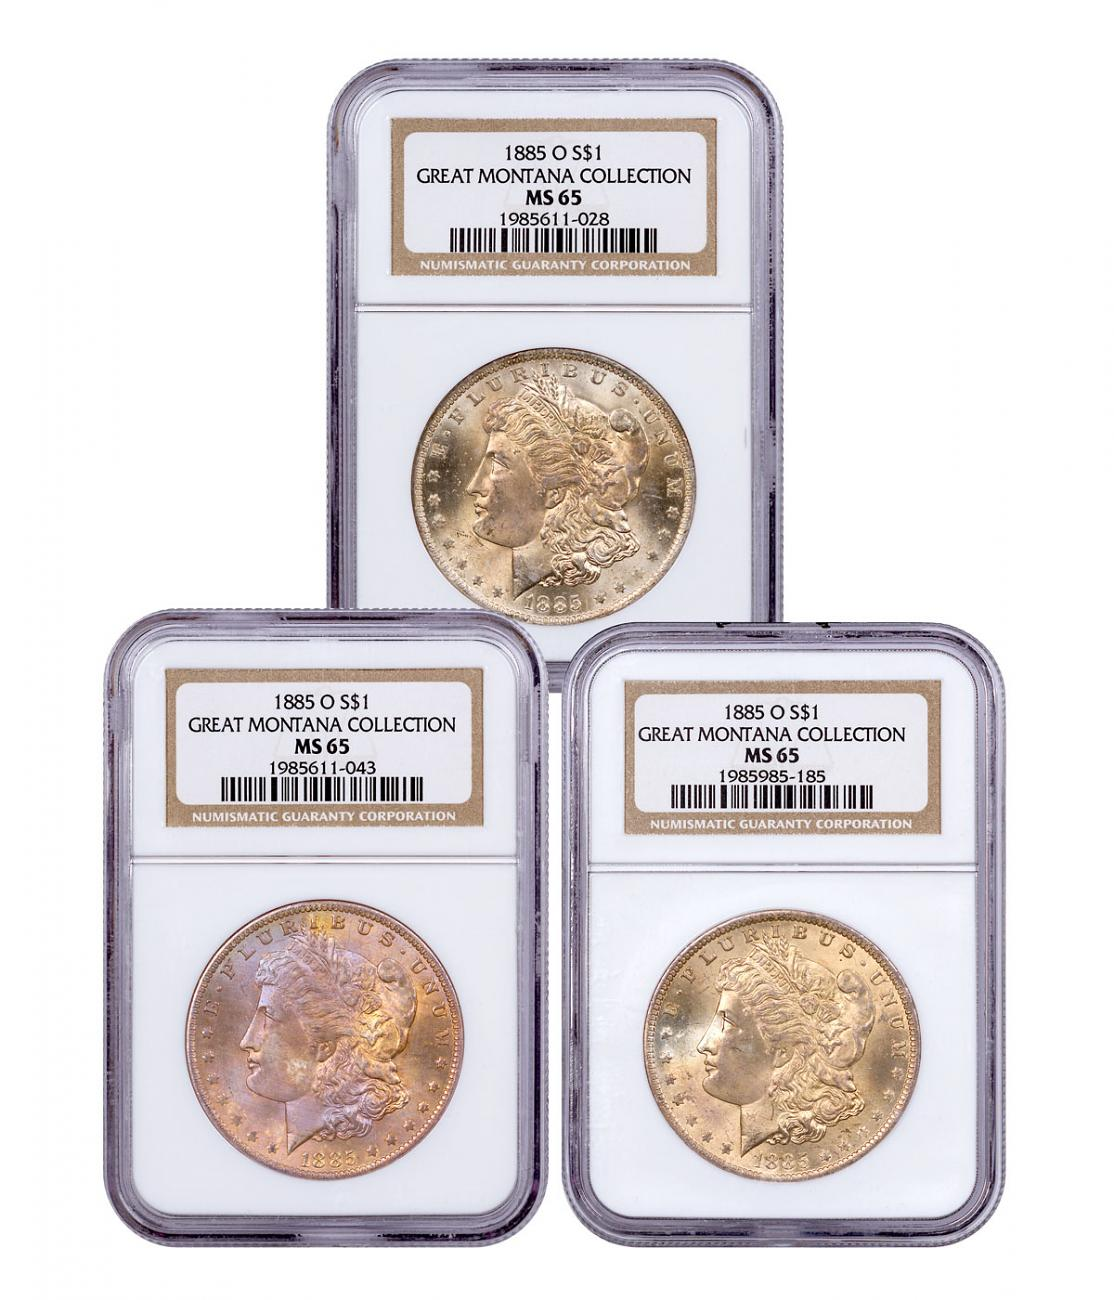 3-Coin Set - 1885-O Morgan Silver Dollar From the Great Montana Collection NGC MS65 Toned CPCR 1028